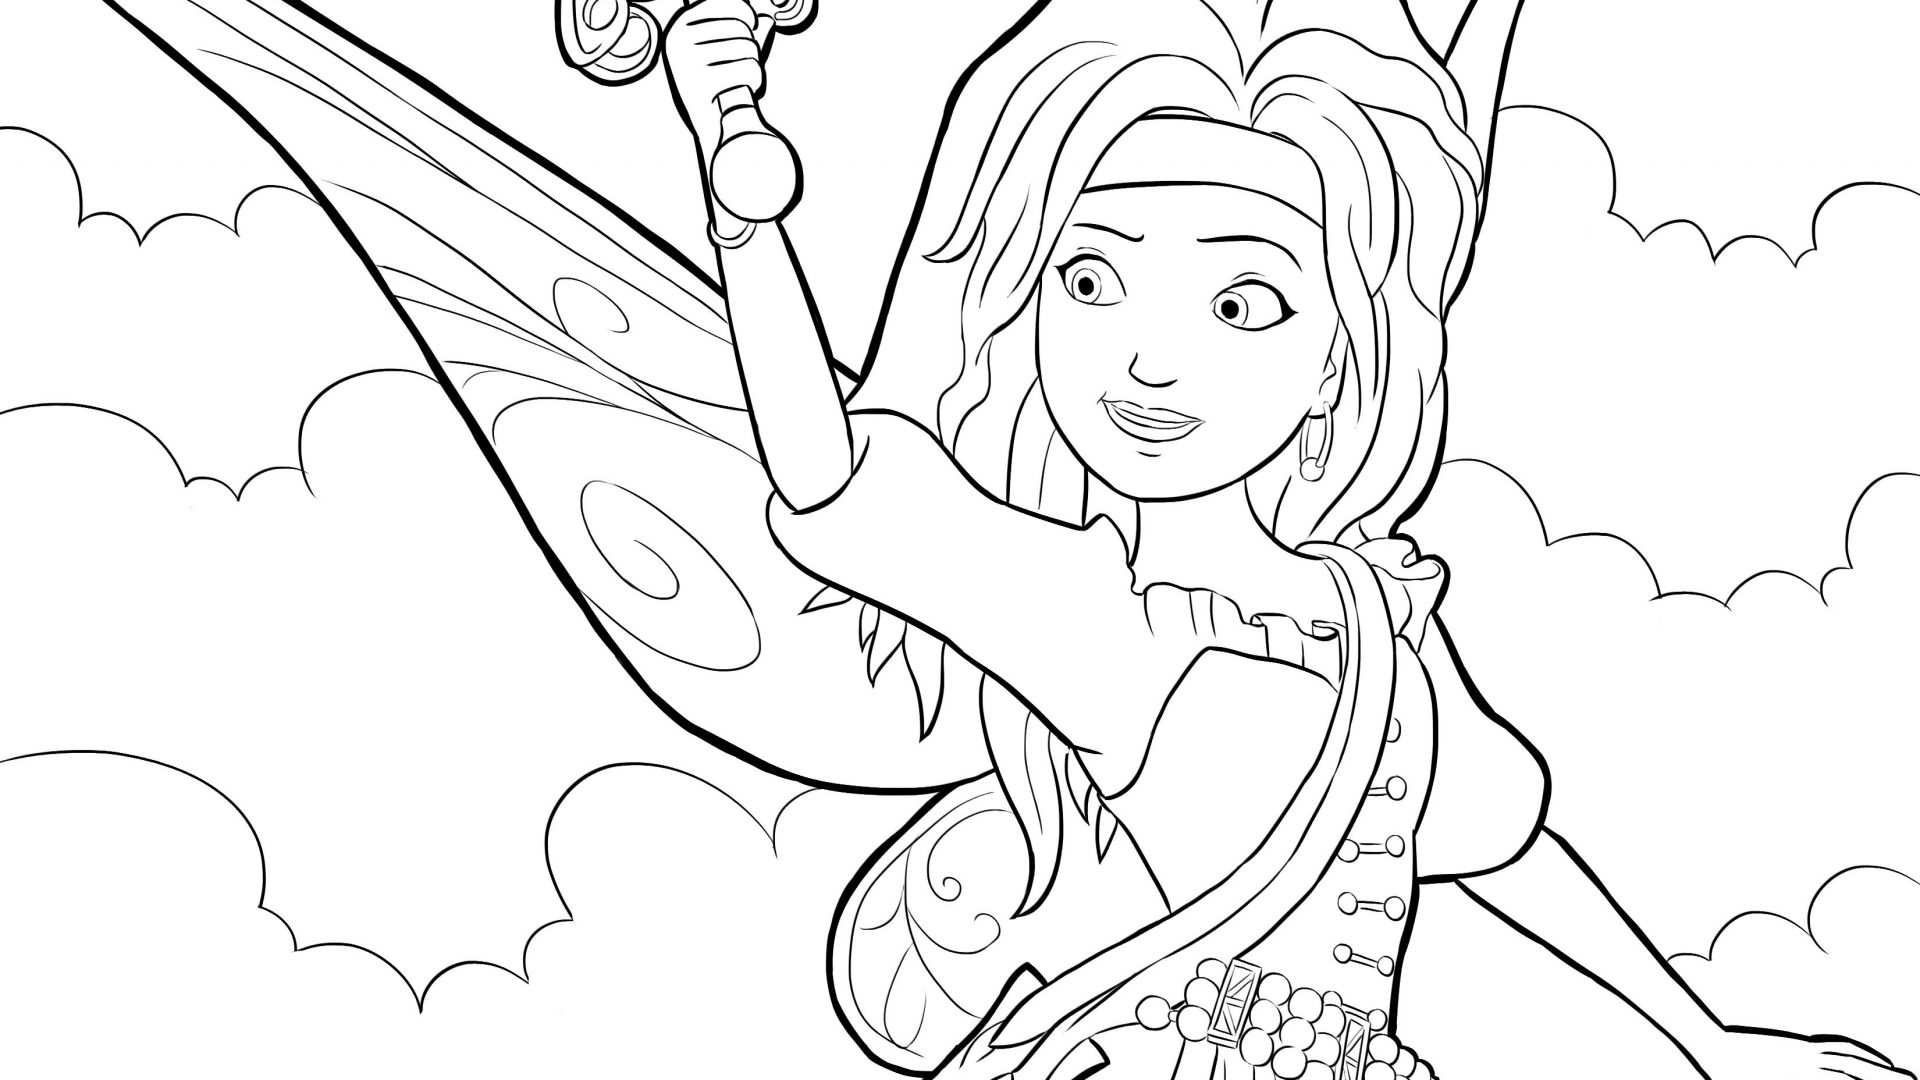 Free Printable Coloring Pages For Adults Fairies at GetDrawings ...